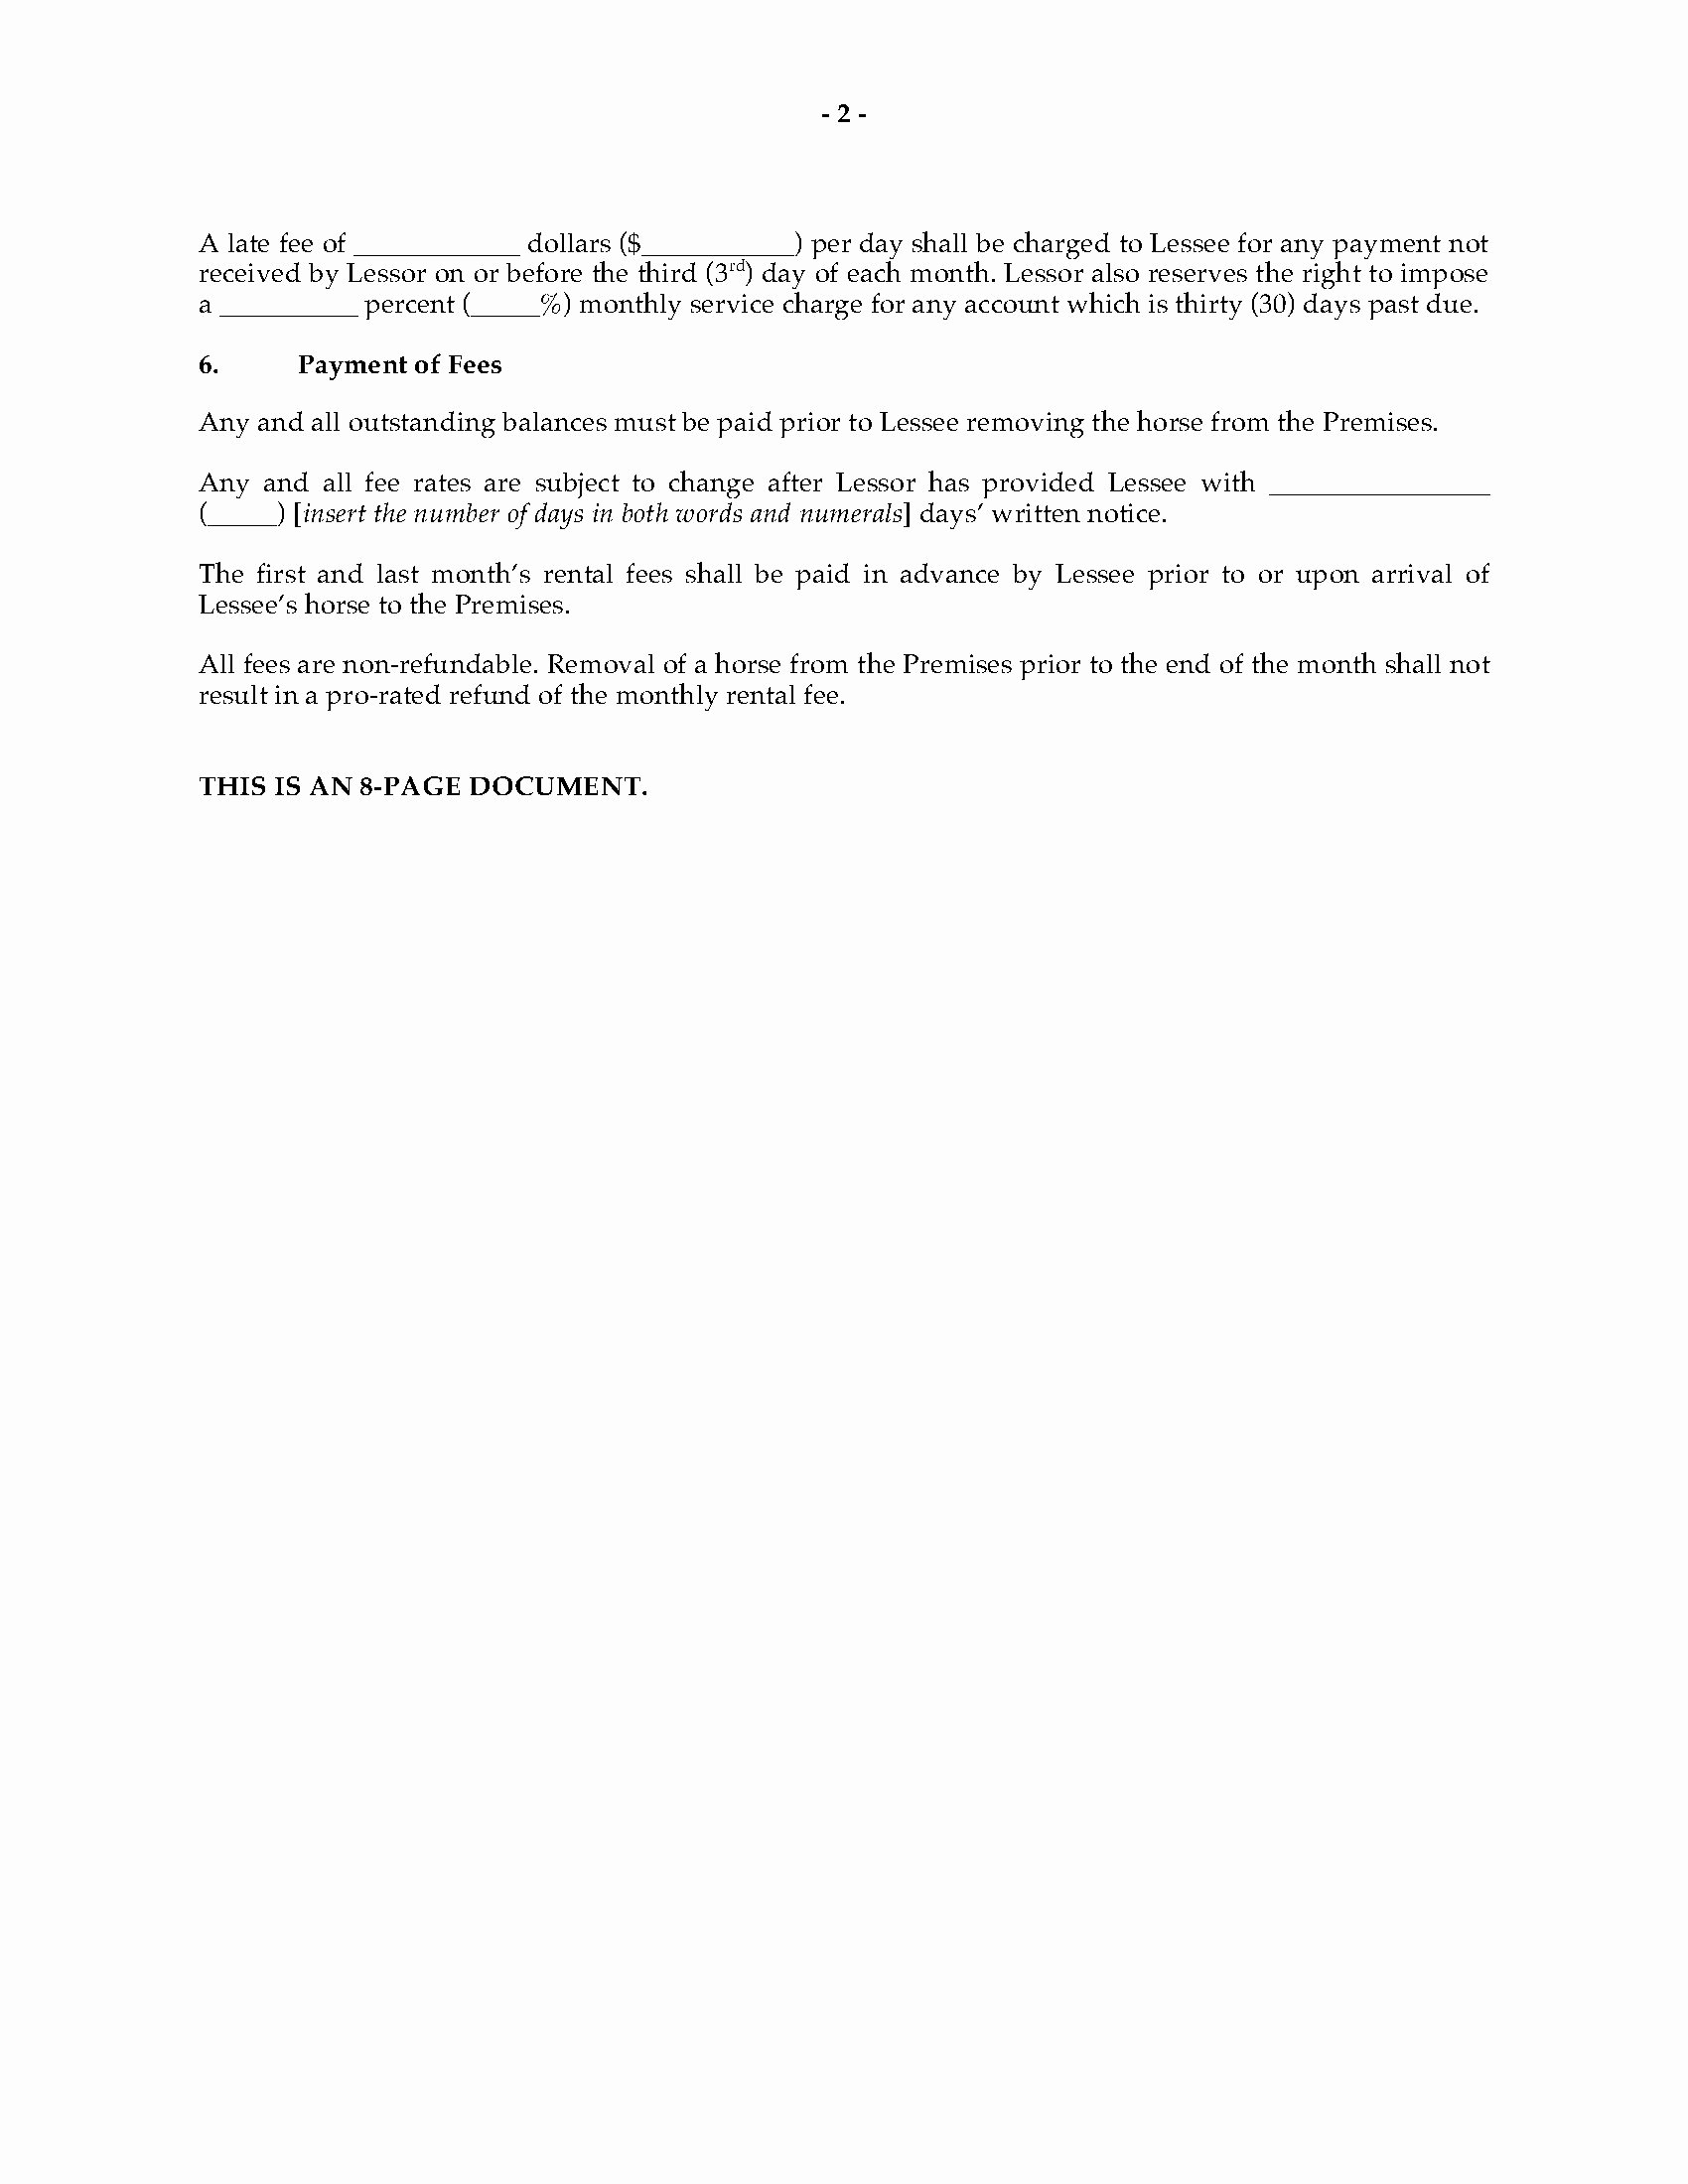 Texas Grazing Lease Agreement Template Elegant Texas Horse Boarding and Stall Lease Agreement